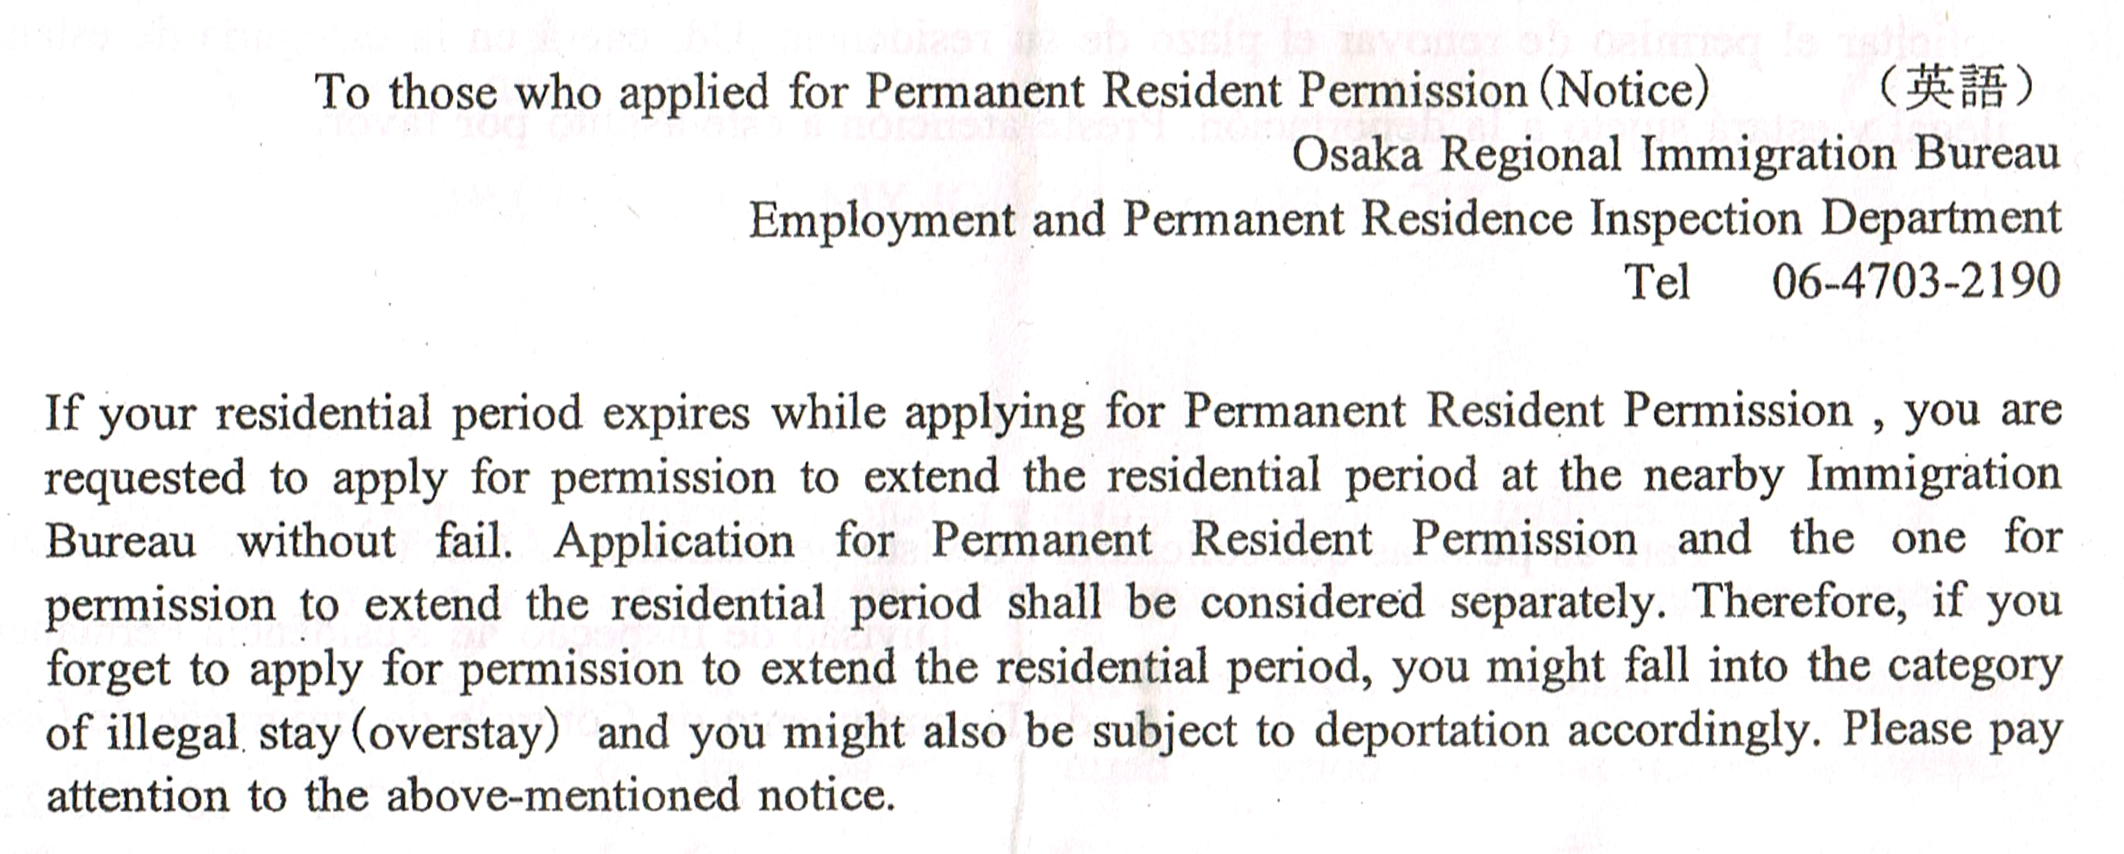 Permanent residency notice